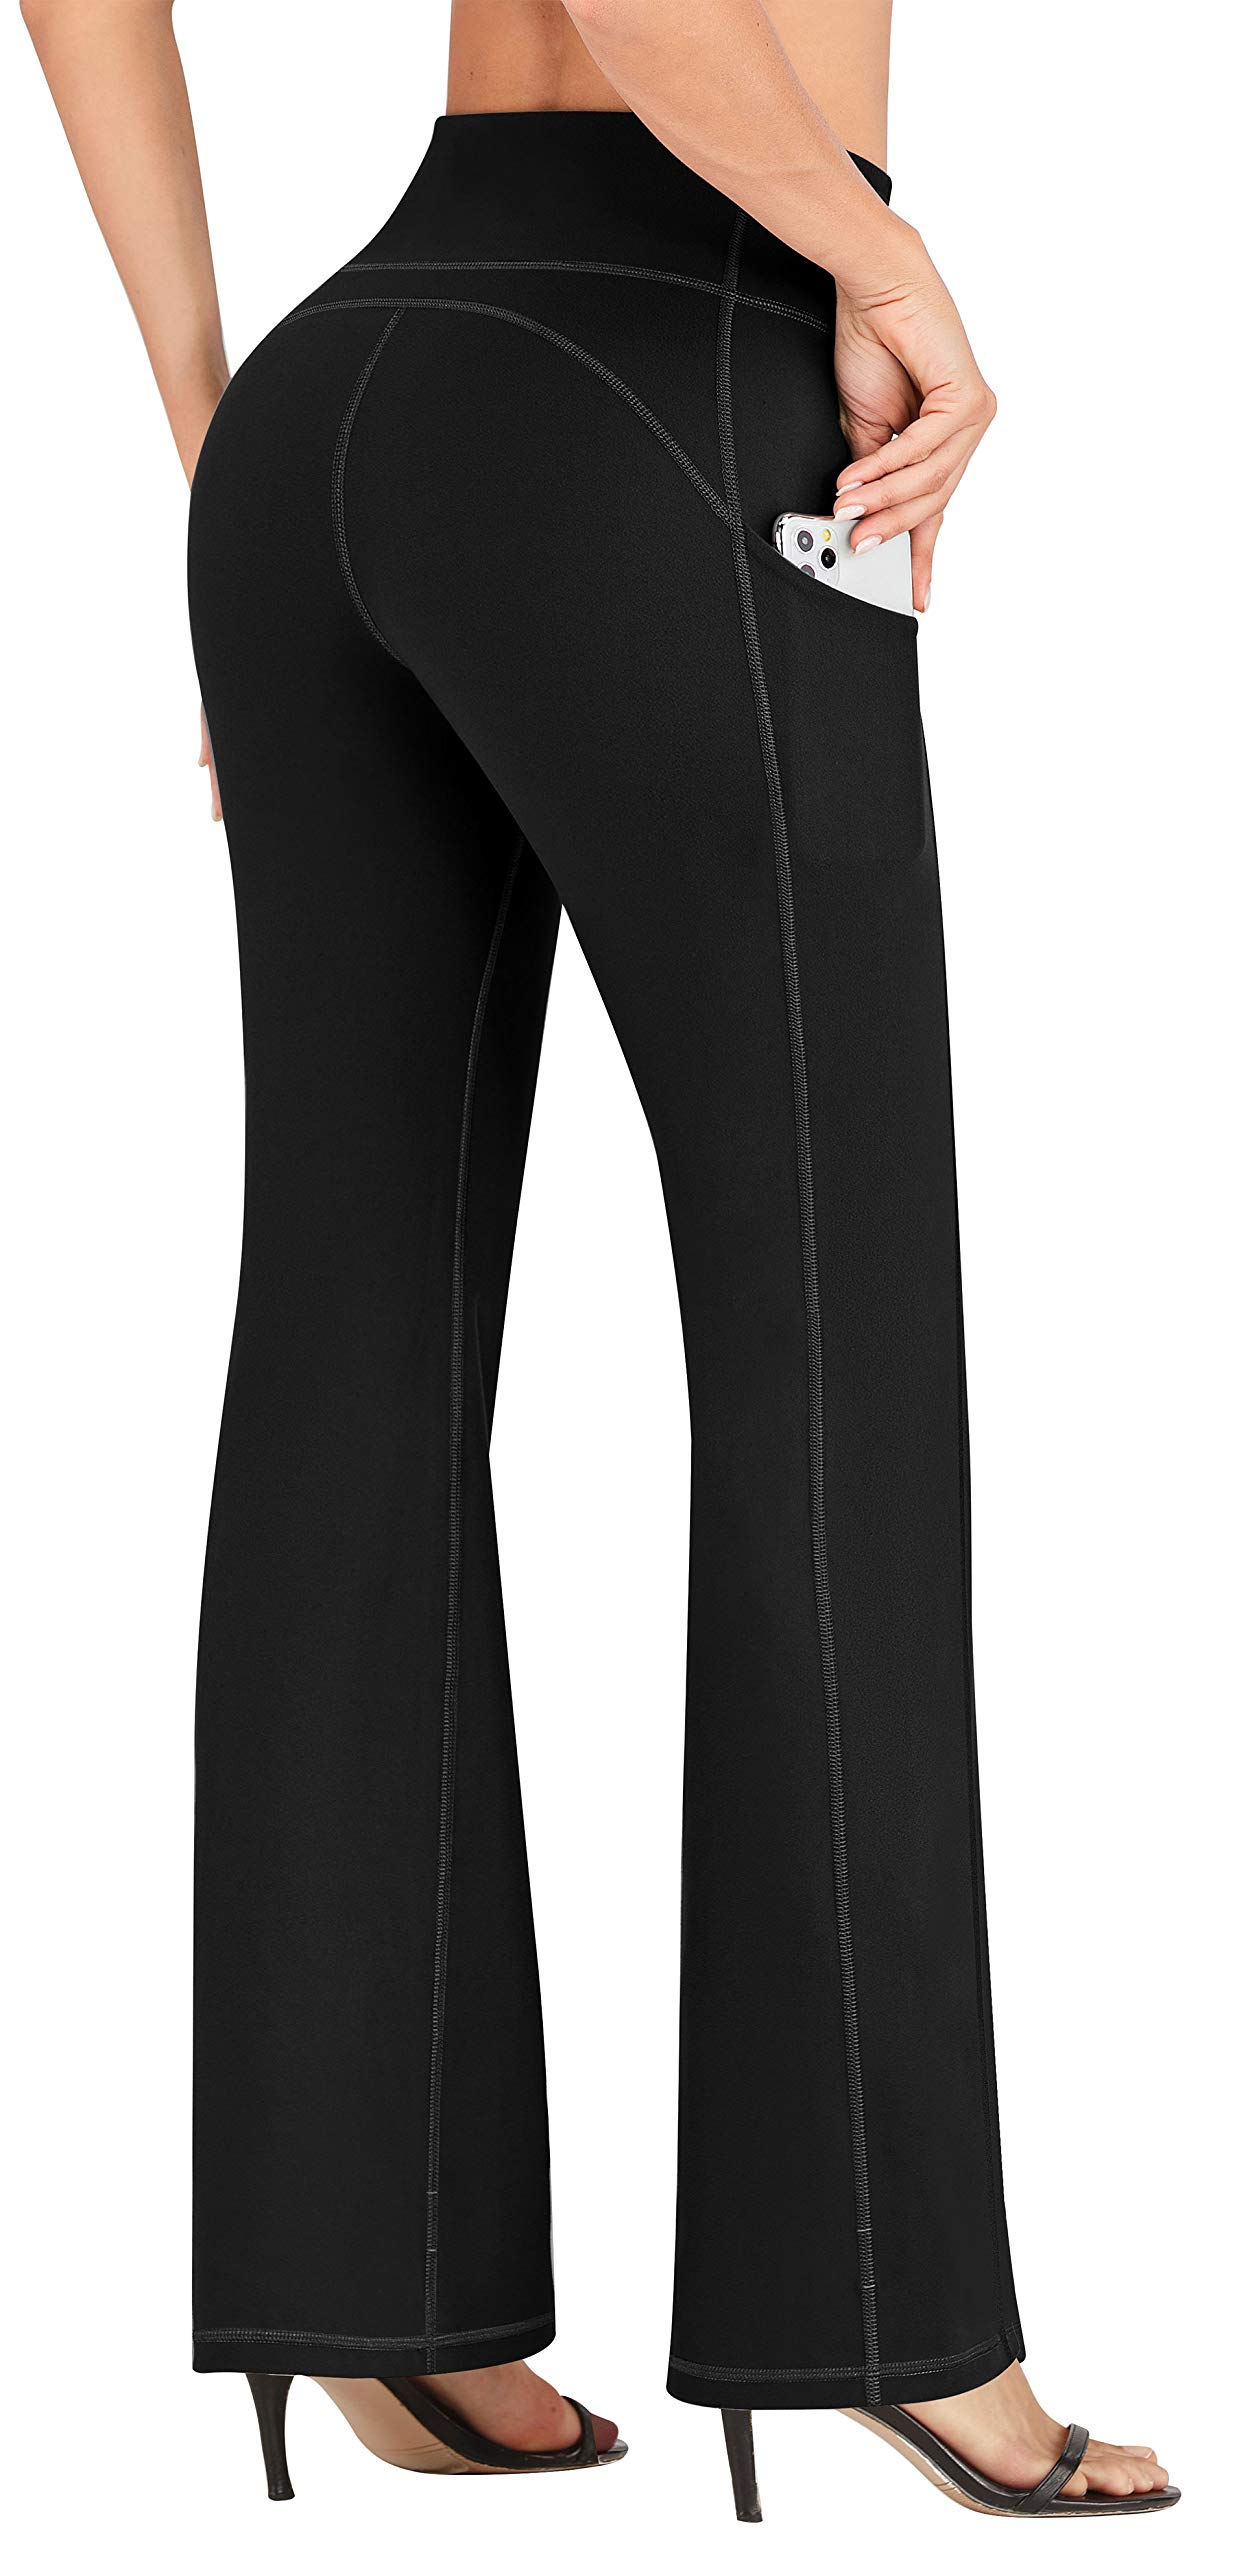 Functional High Waist Workout Pants Gym  Apparel for Women by MAVA Sports XL